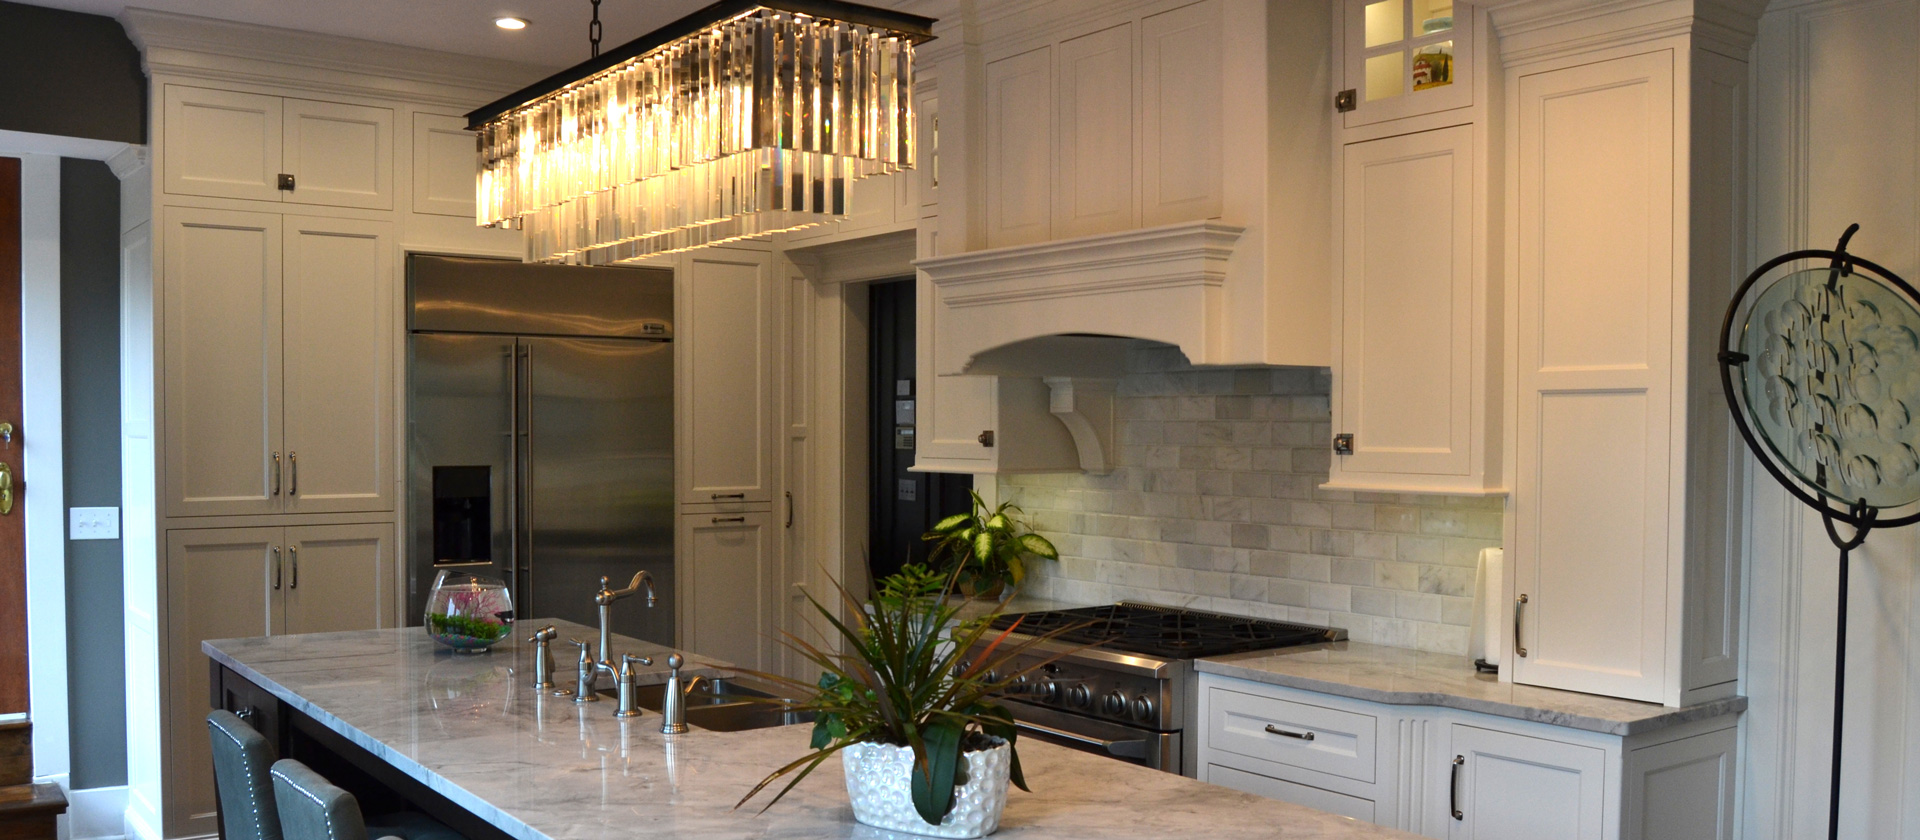 welcome to our custom kitchen design